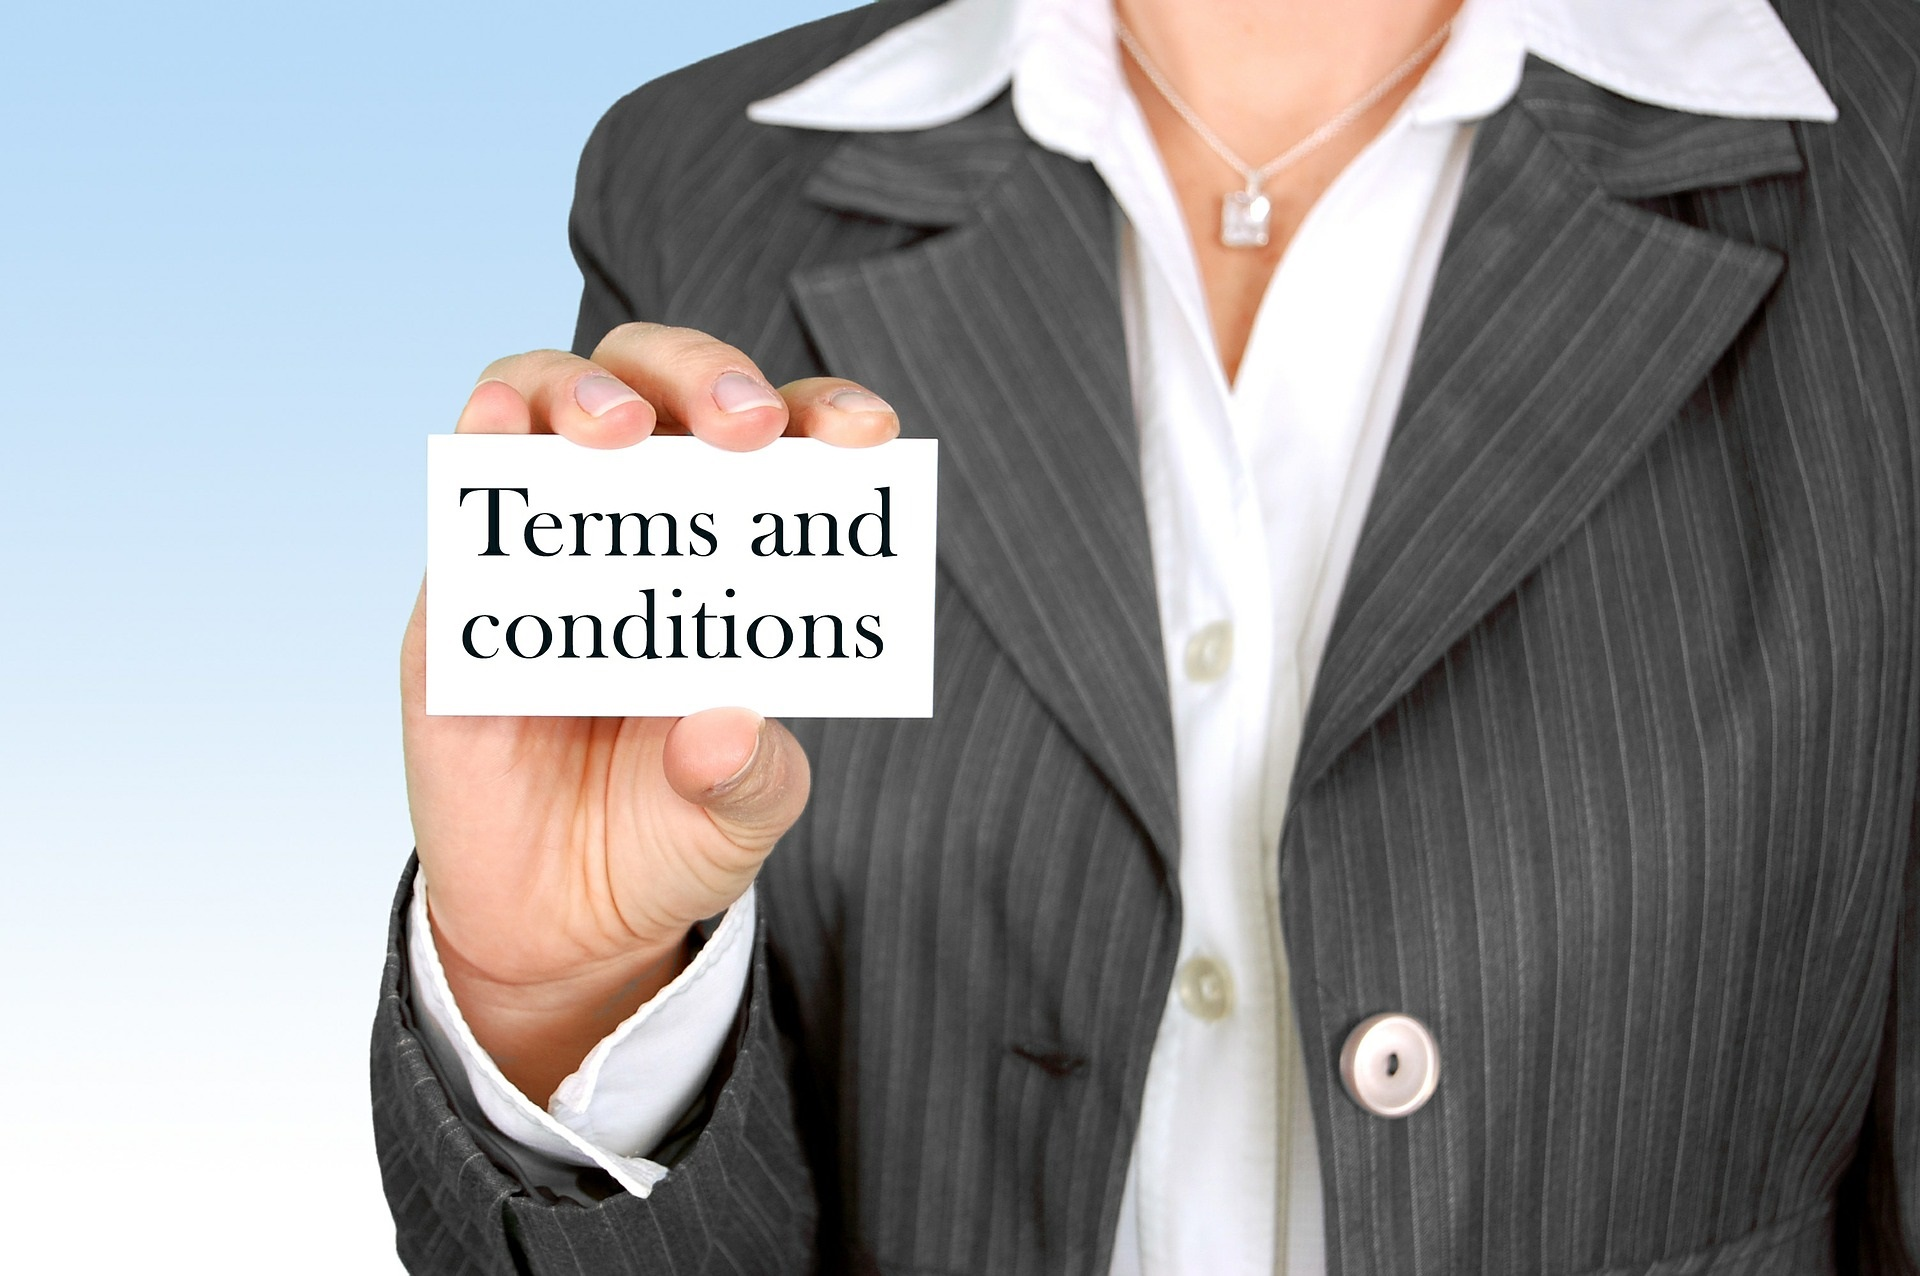 Employment Law: Terms and Conditions of Employment